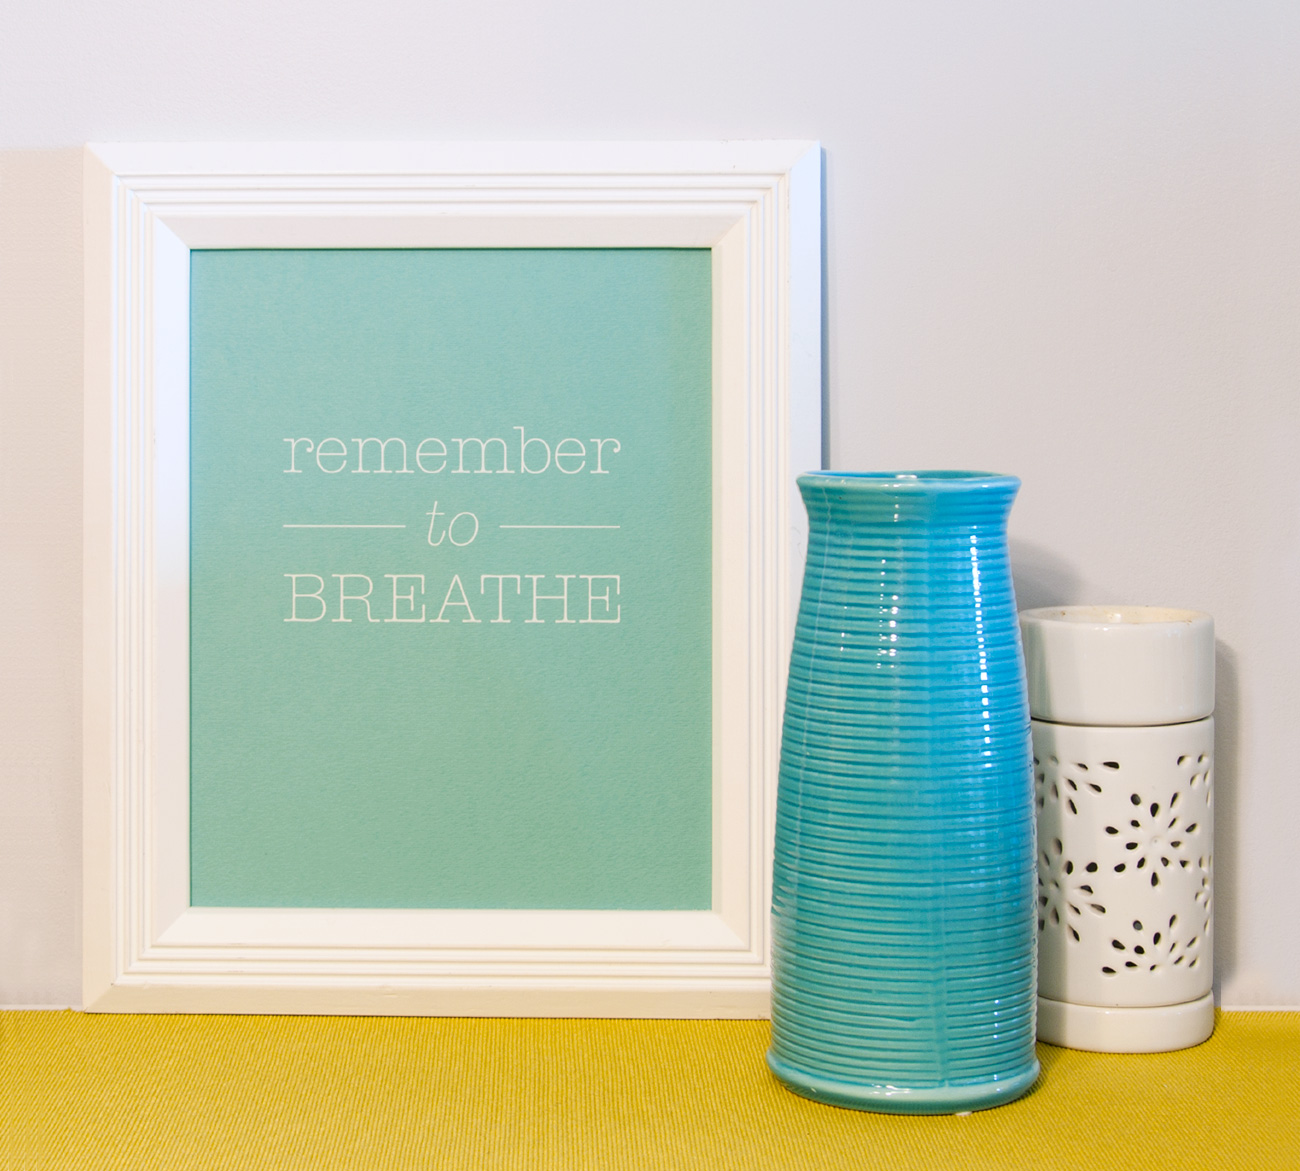 Remember to breathe by Jasmine Habart